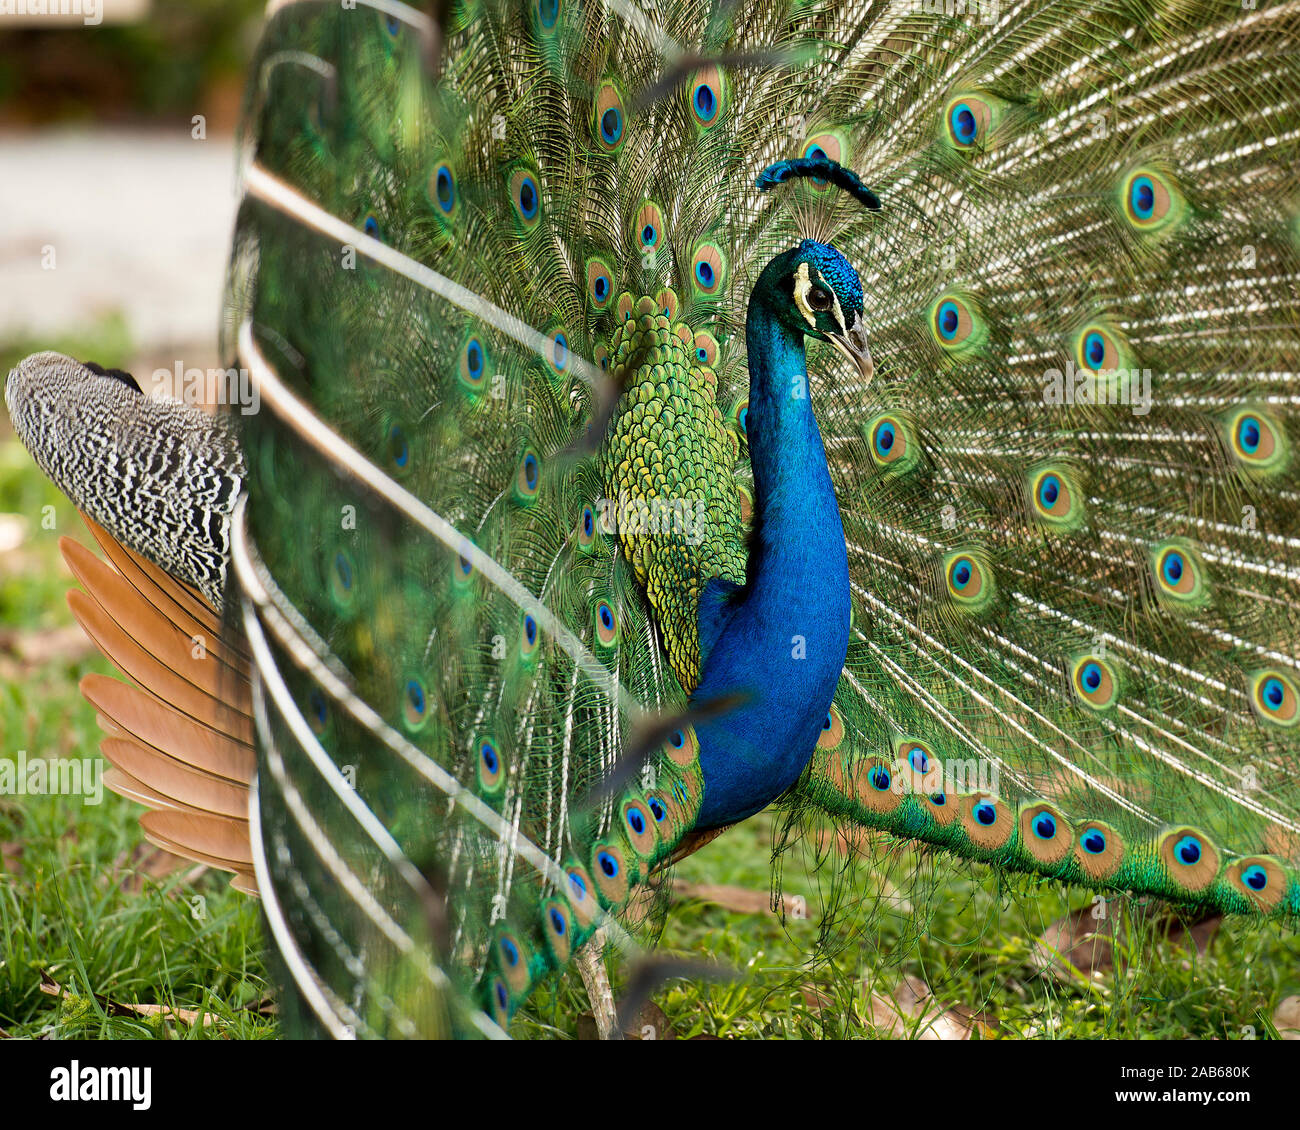 Peacock bird, the beautiful colorful bird. Stock Photo